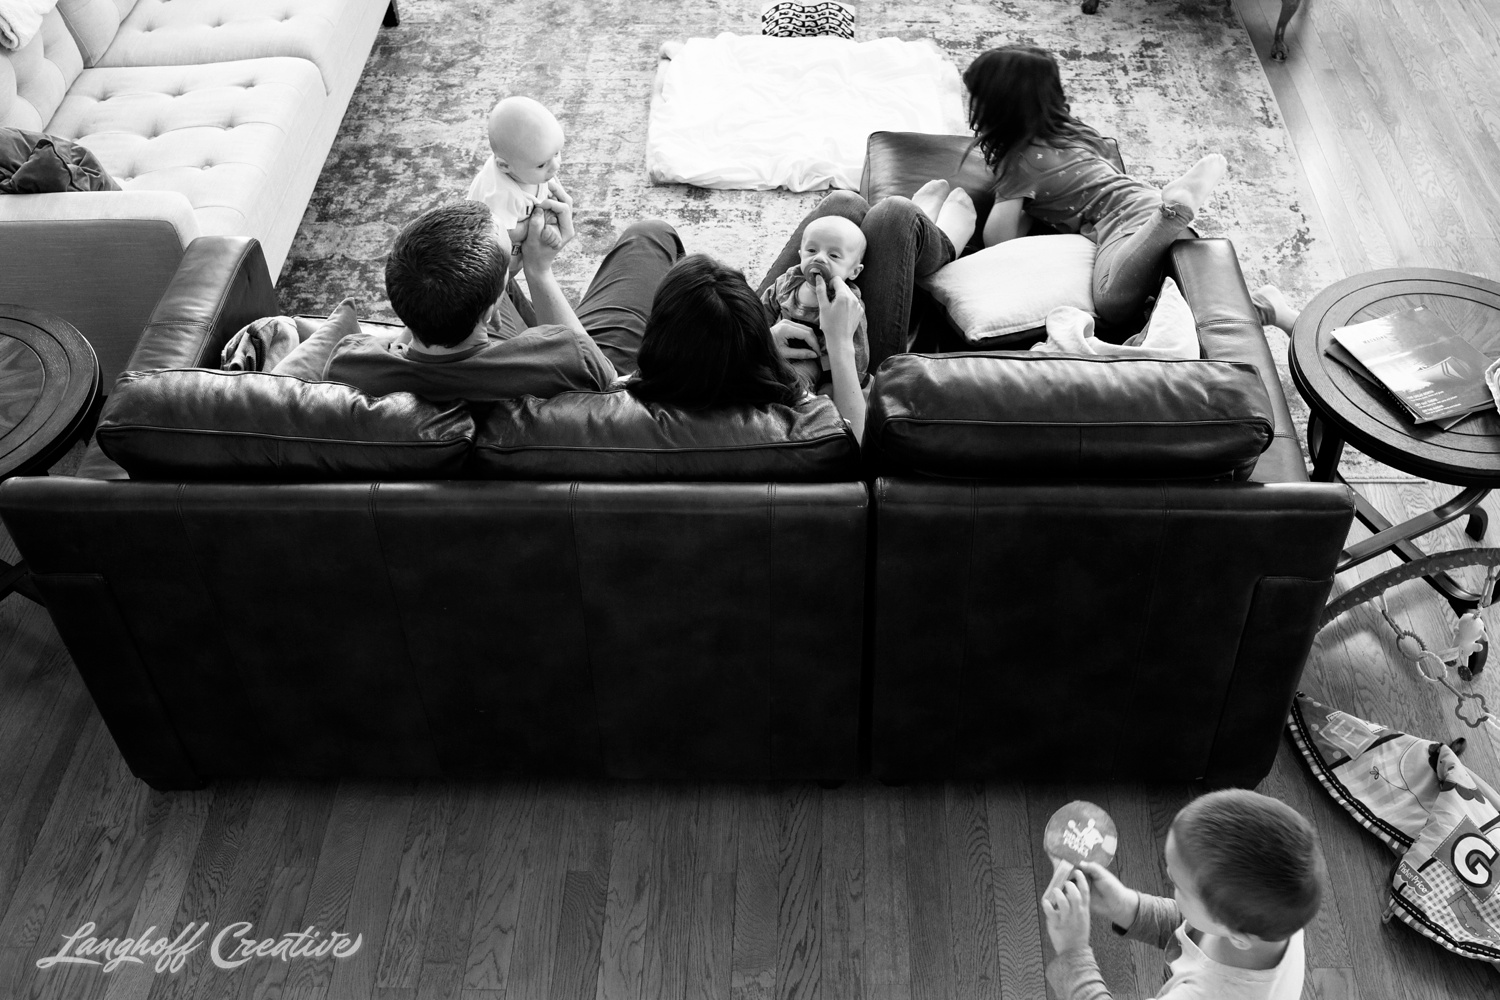 20170211-SchulteFamily-RealLifeSession-DayInTheLife-Twins-LanghoffCreative-DocumentaryFamilyPhotography-RDUphotographer-7-photo.jpg